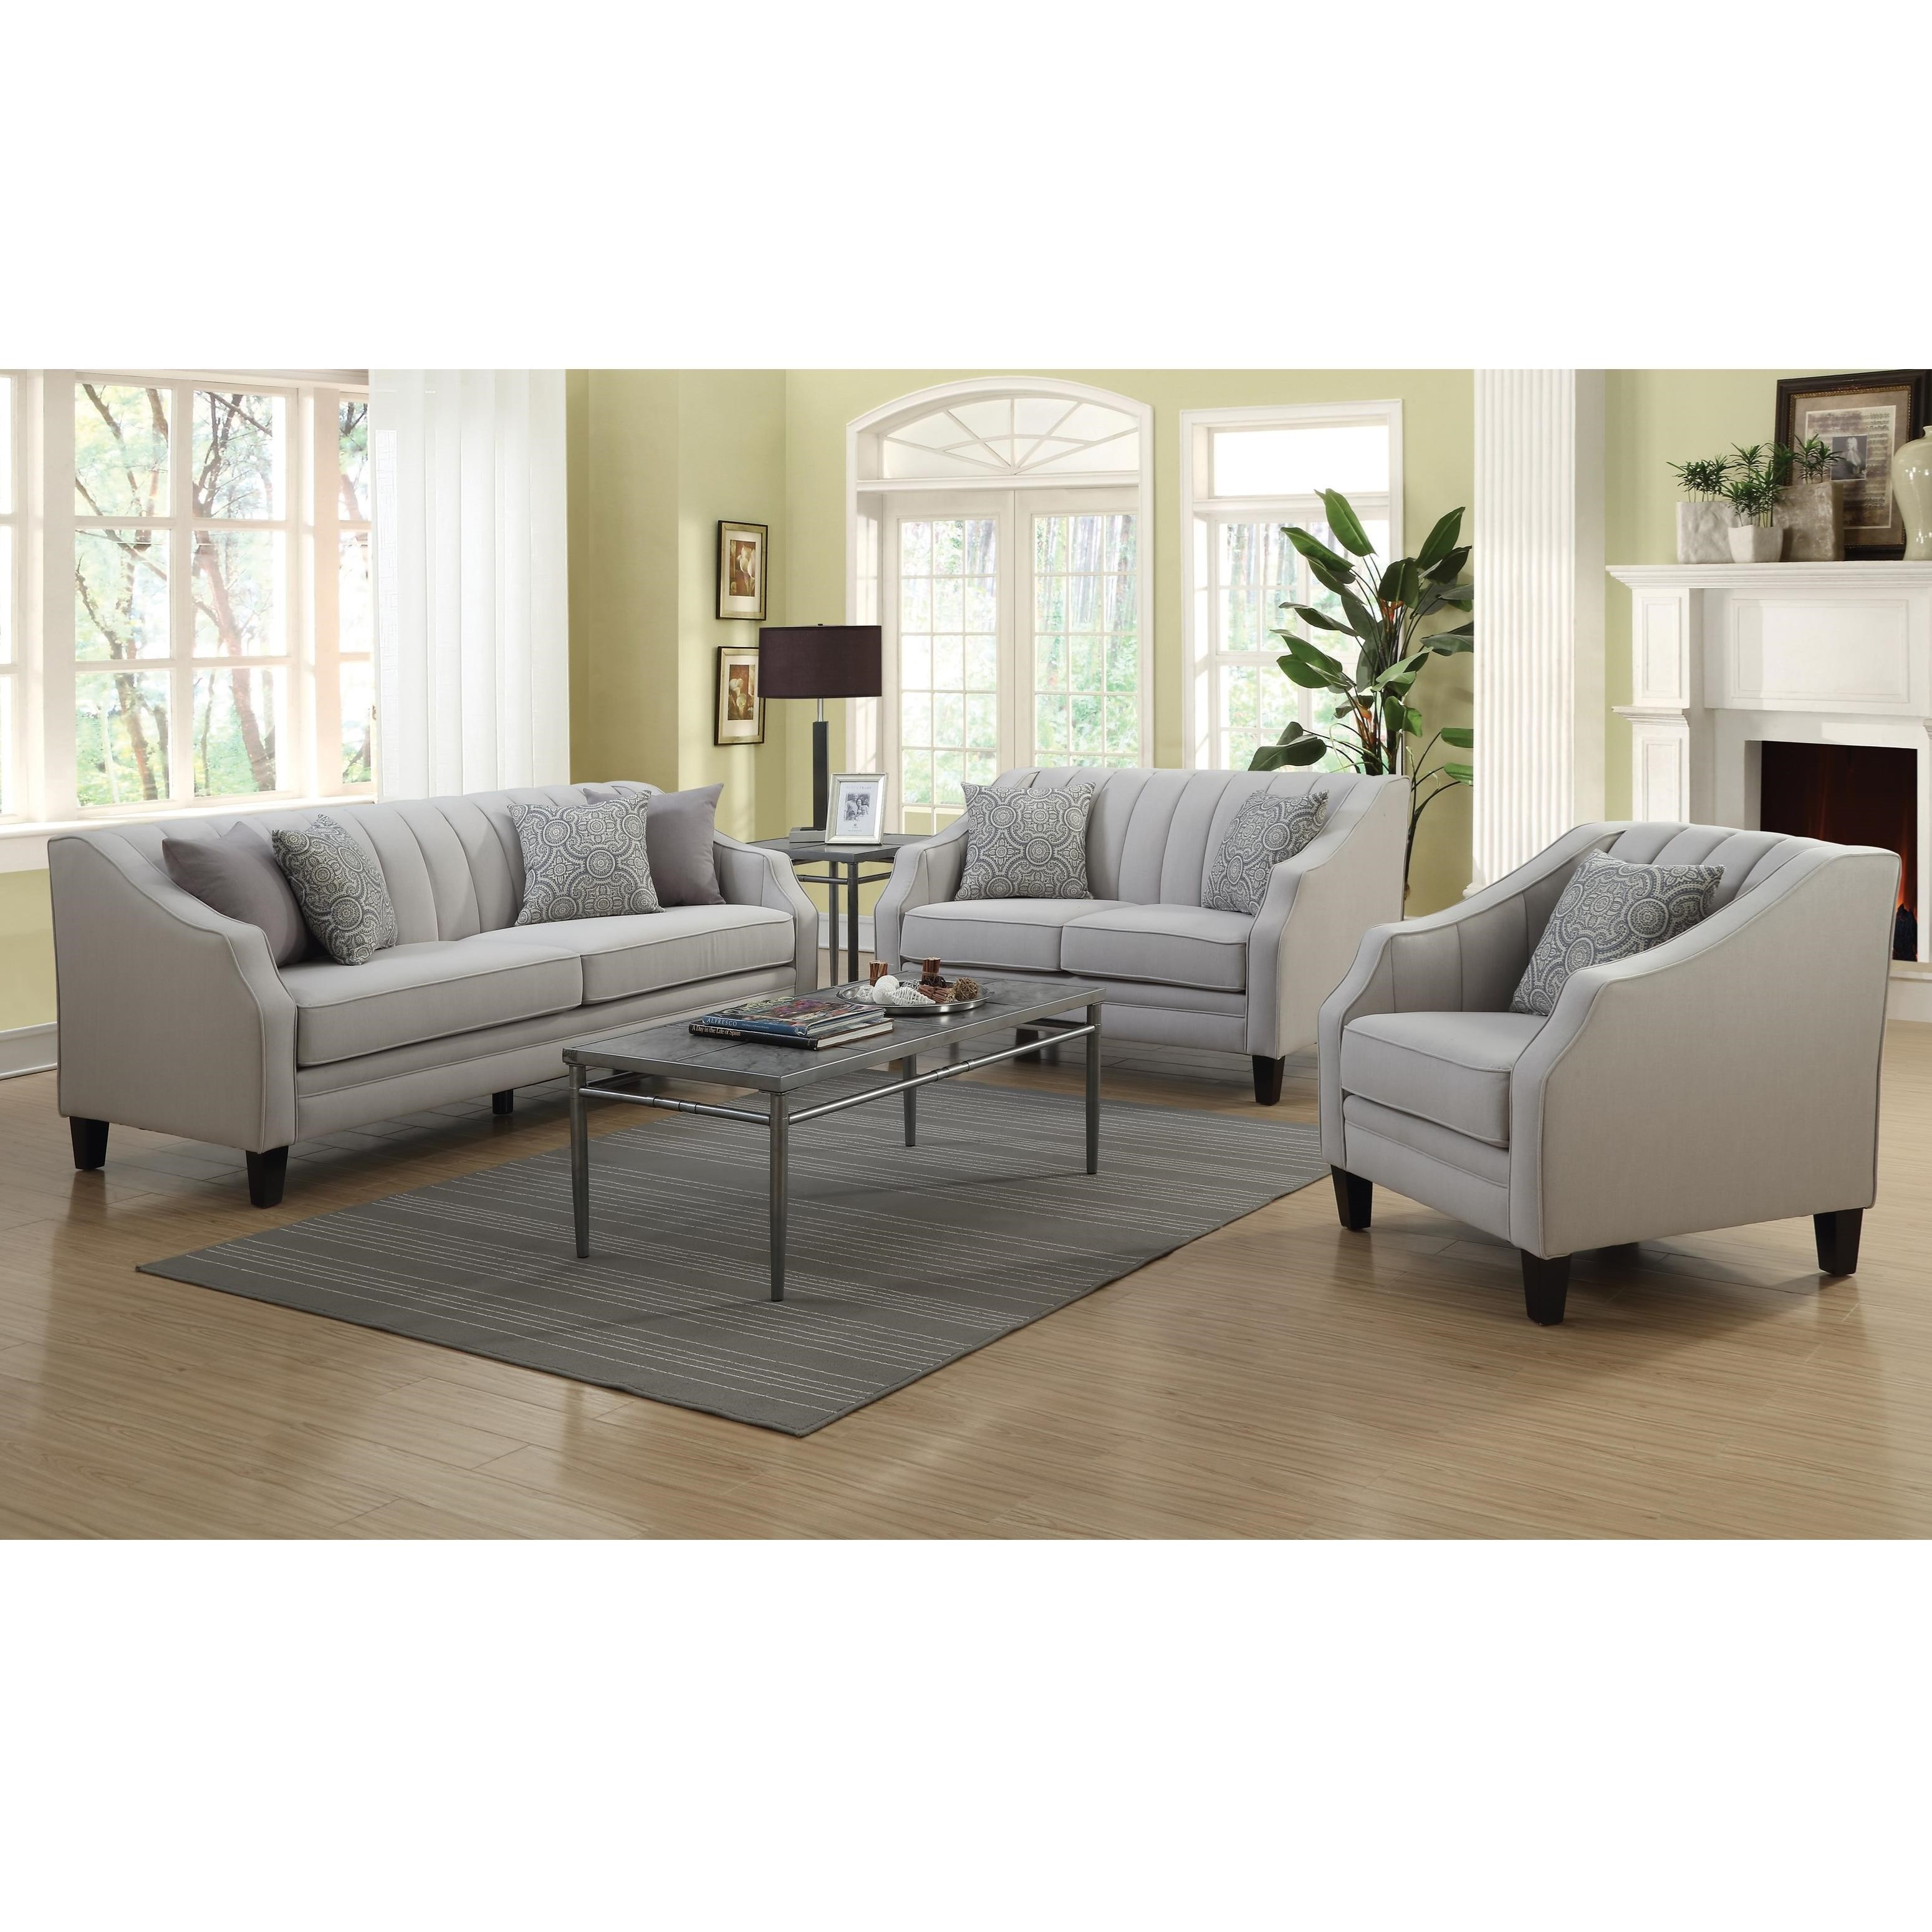 Coaster Loxley Stationary Living Room Group Value City Furniture Stationary Living Room Groups